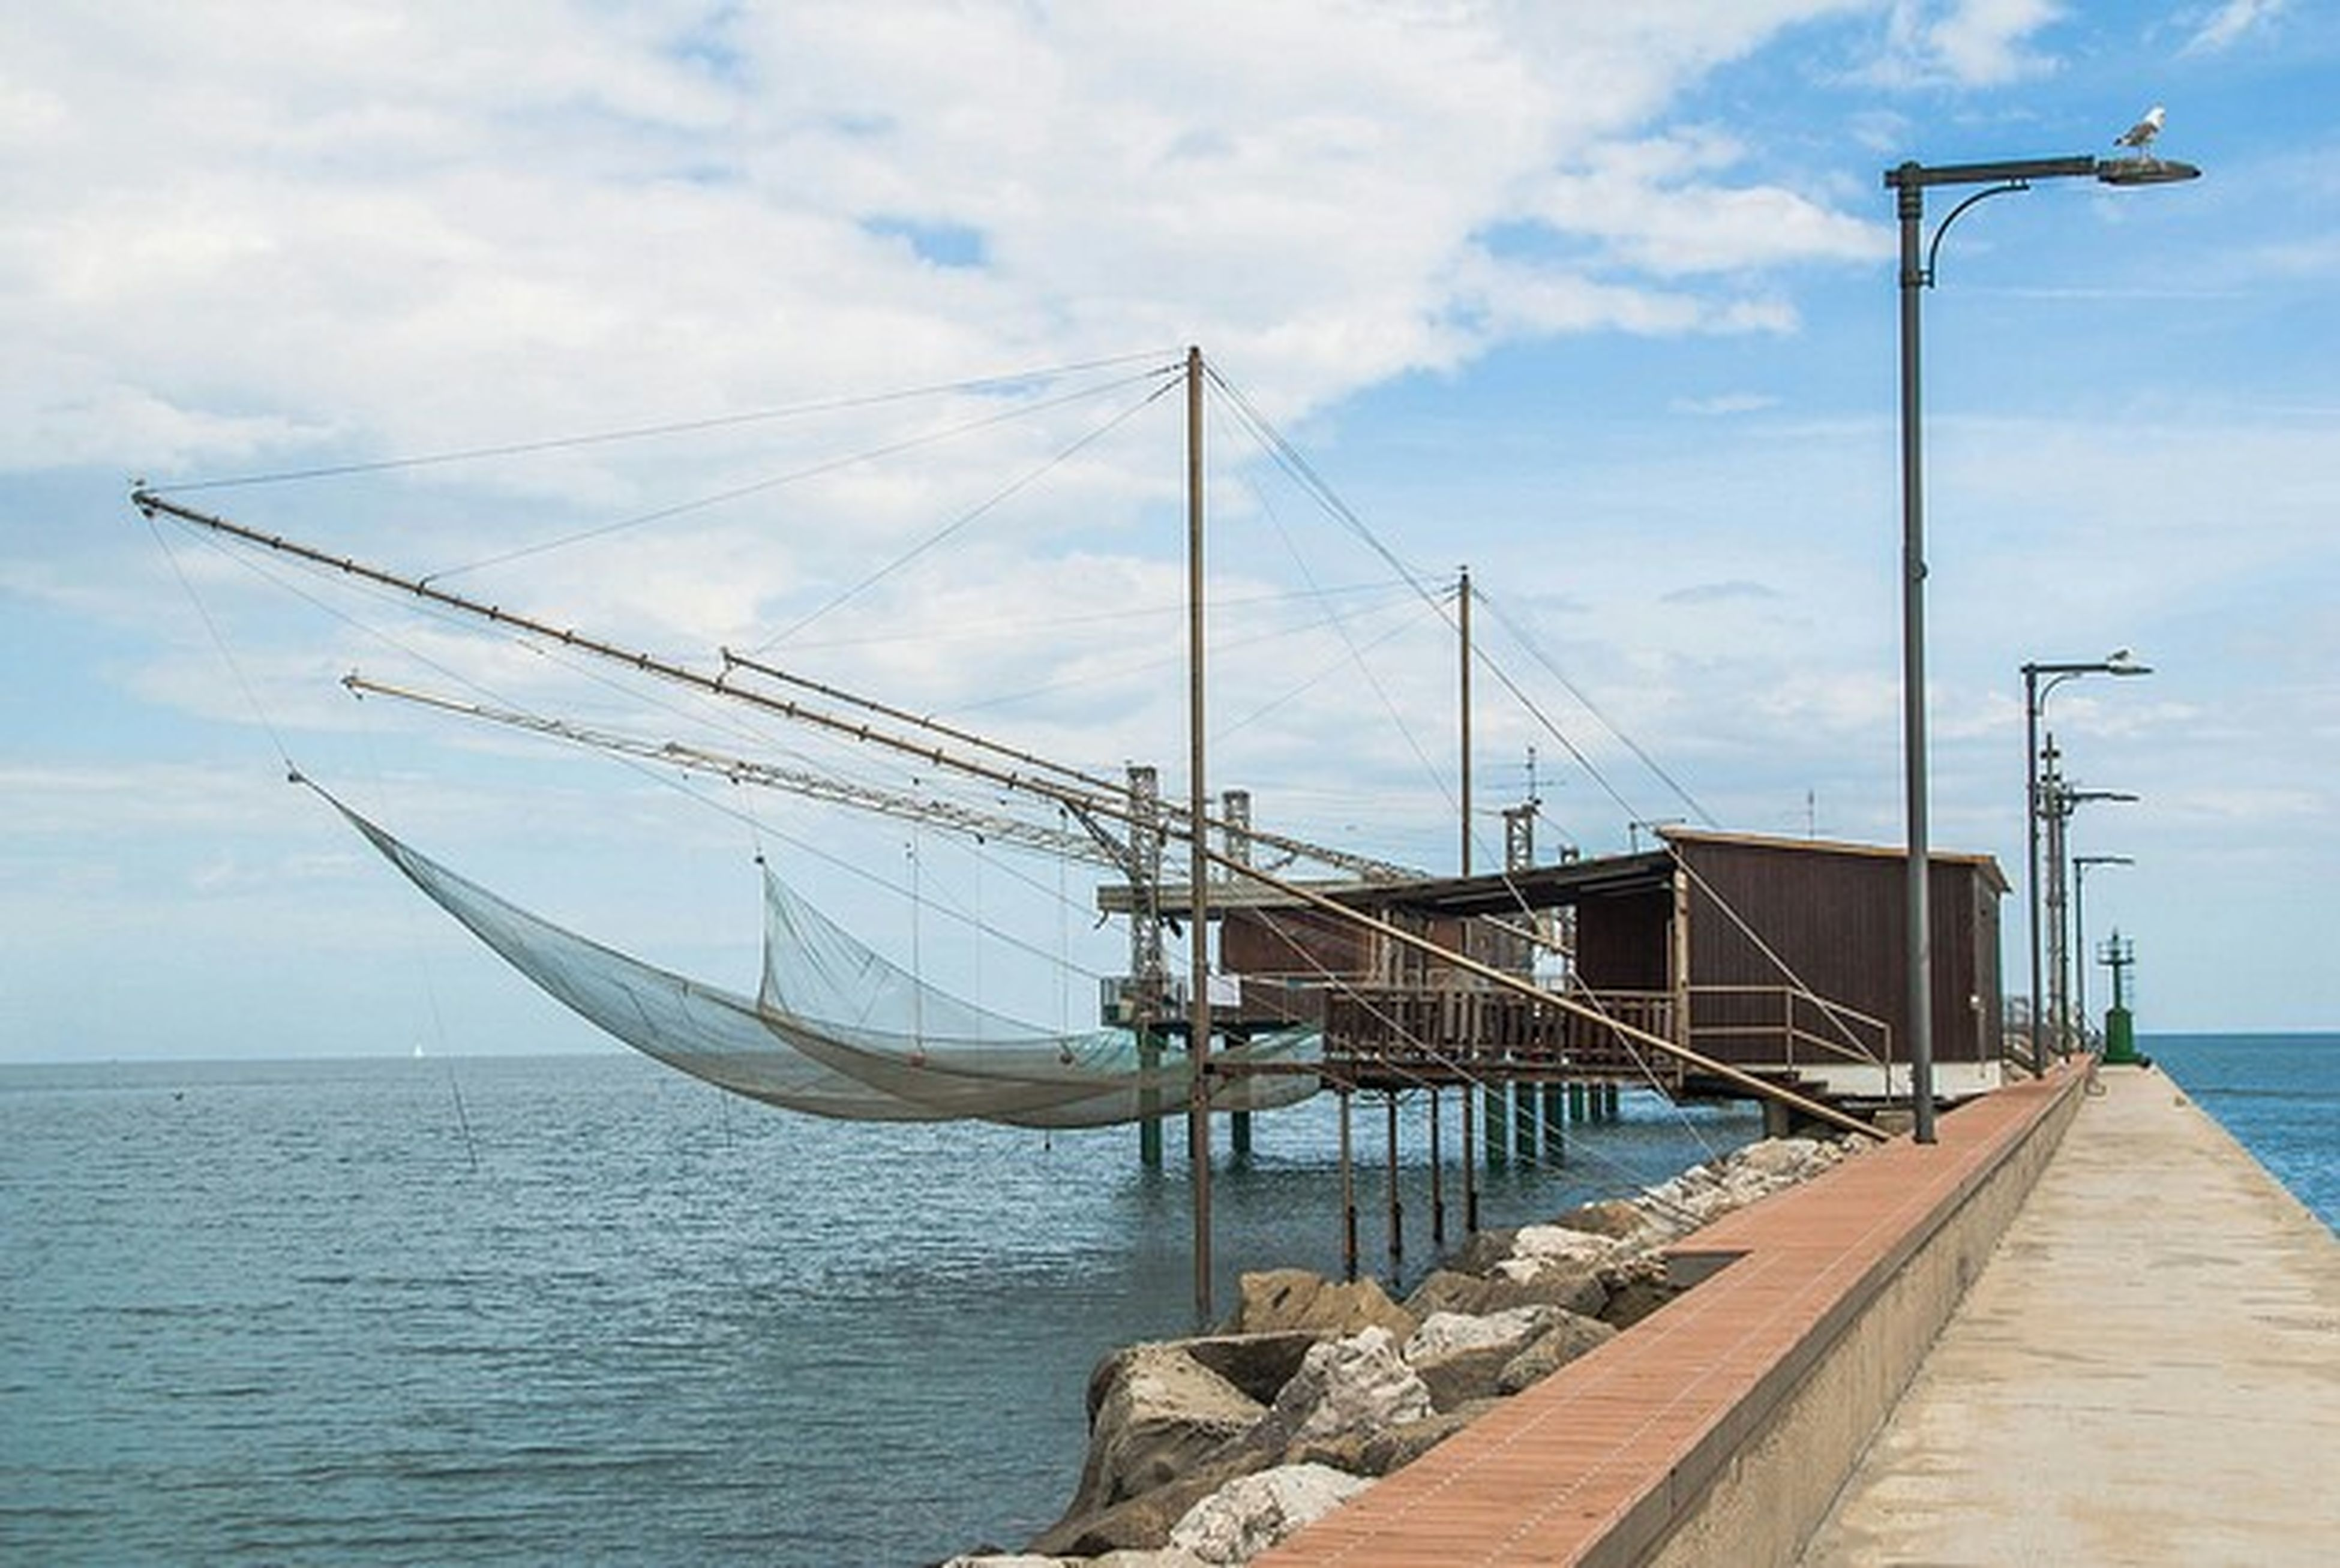 sea, water, sky, pier, transportation, cloud - sky, cloud, horizon over water, the way forward, tranquility, nautical vessel, tranquil scene, nature, connection, day, railing, built structure, jetty, no people, long